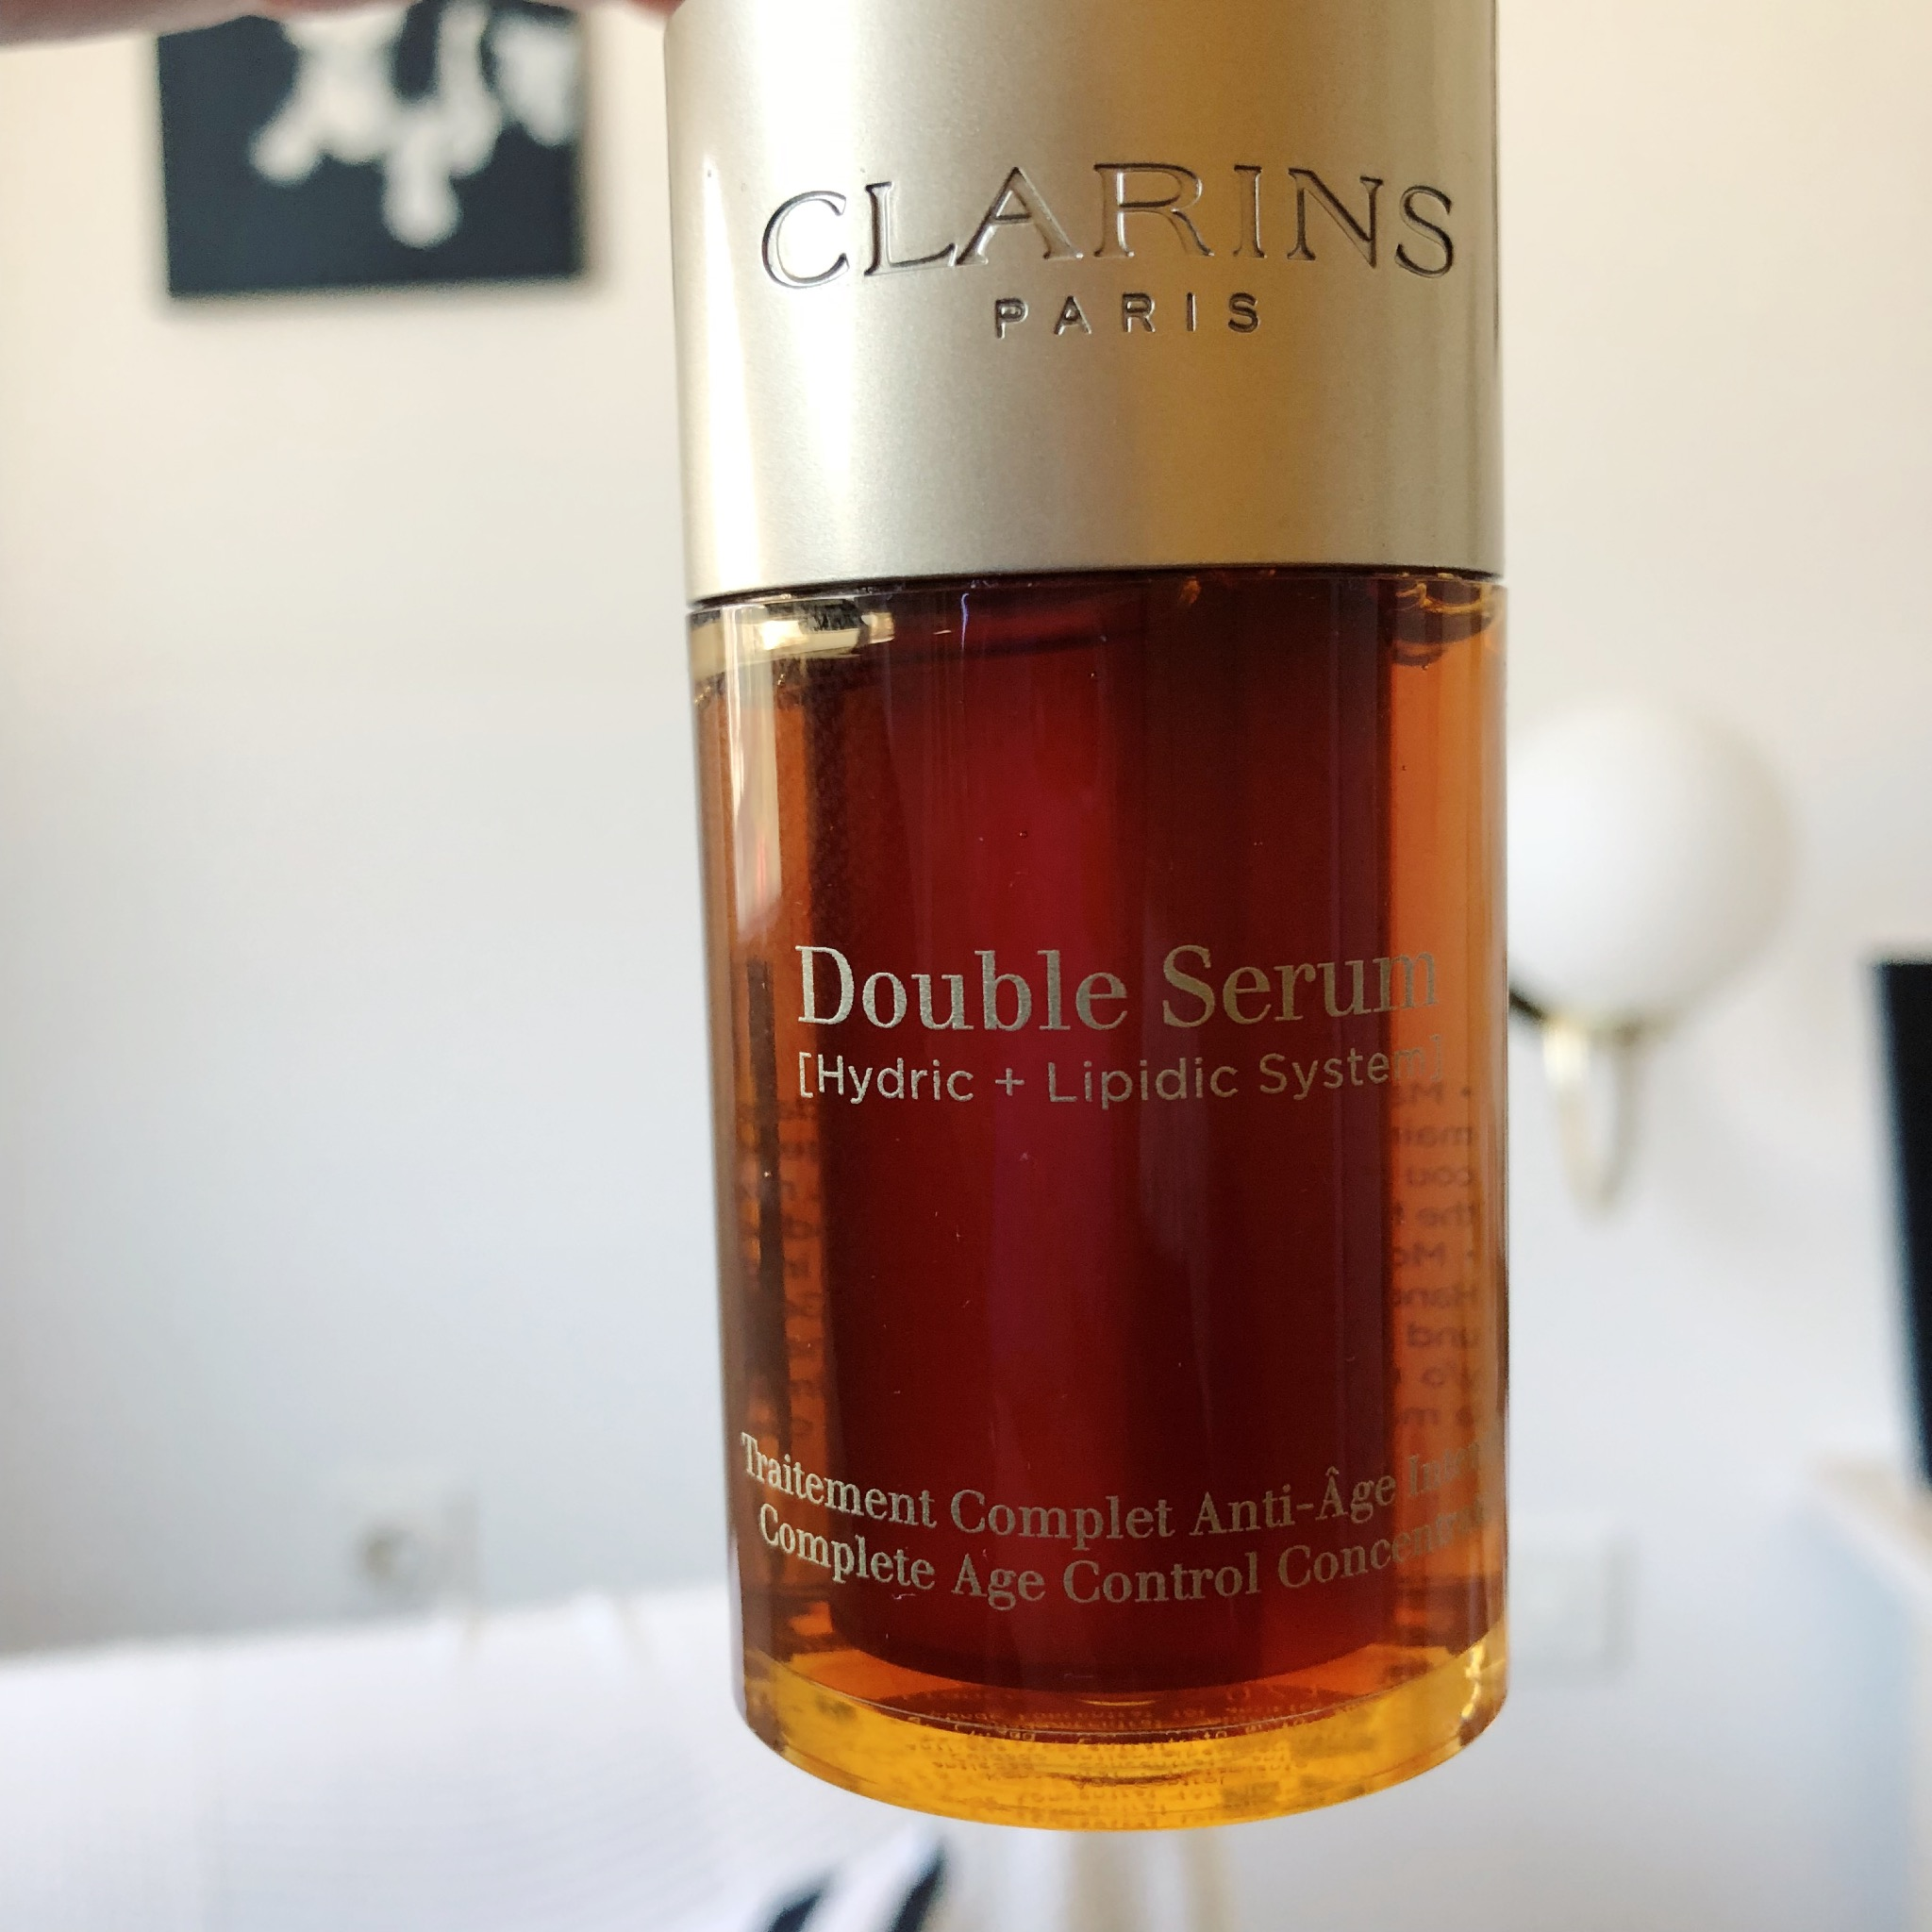 Clarins Double Serum Misses Bond